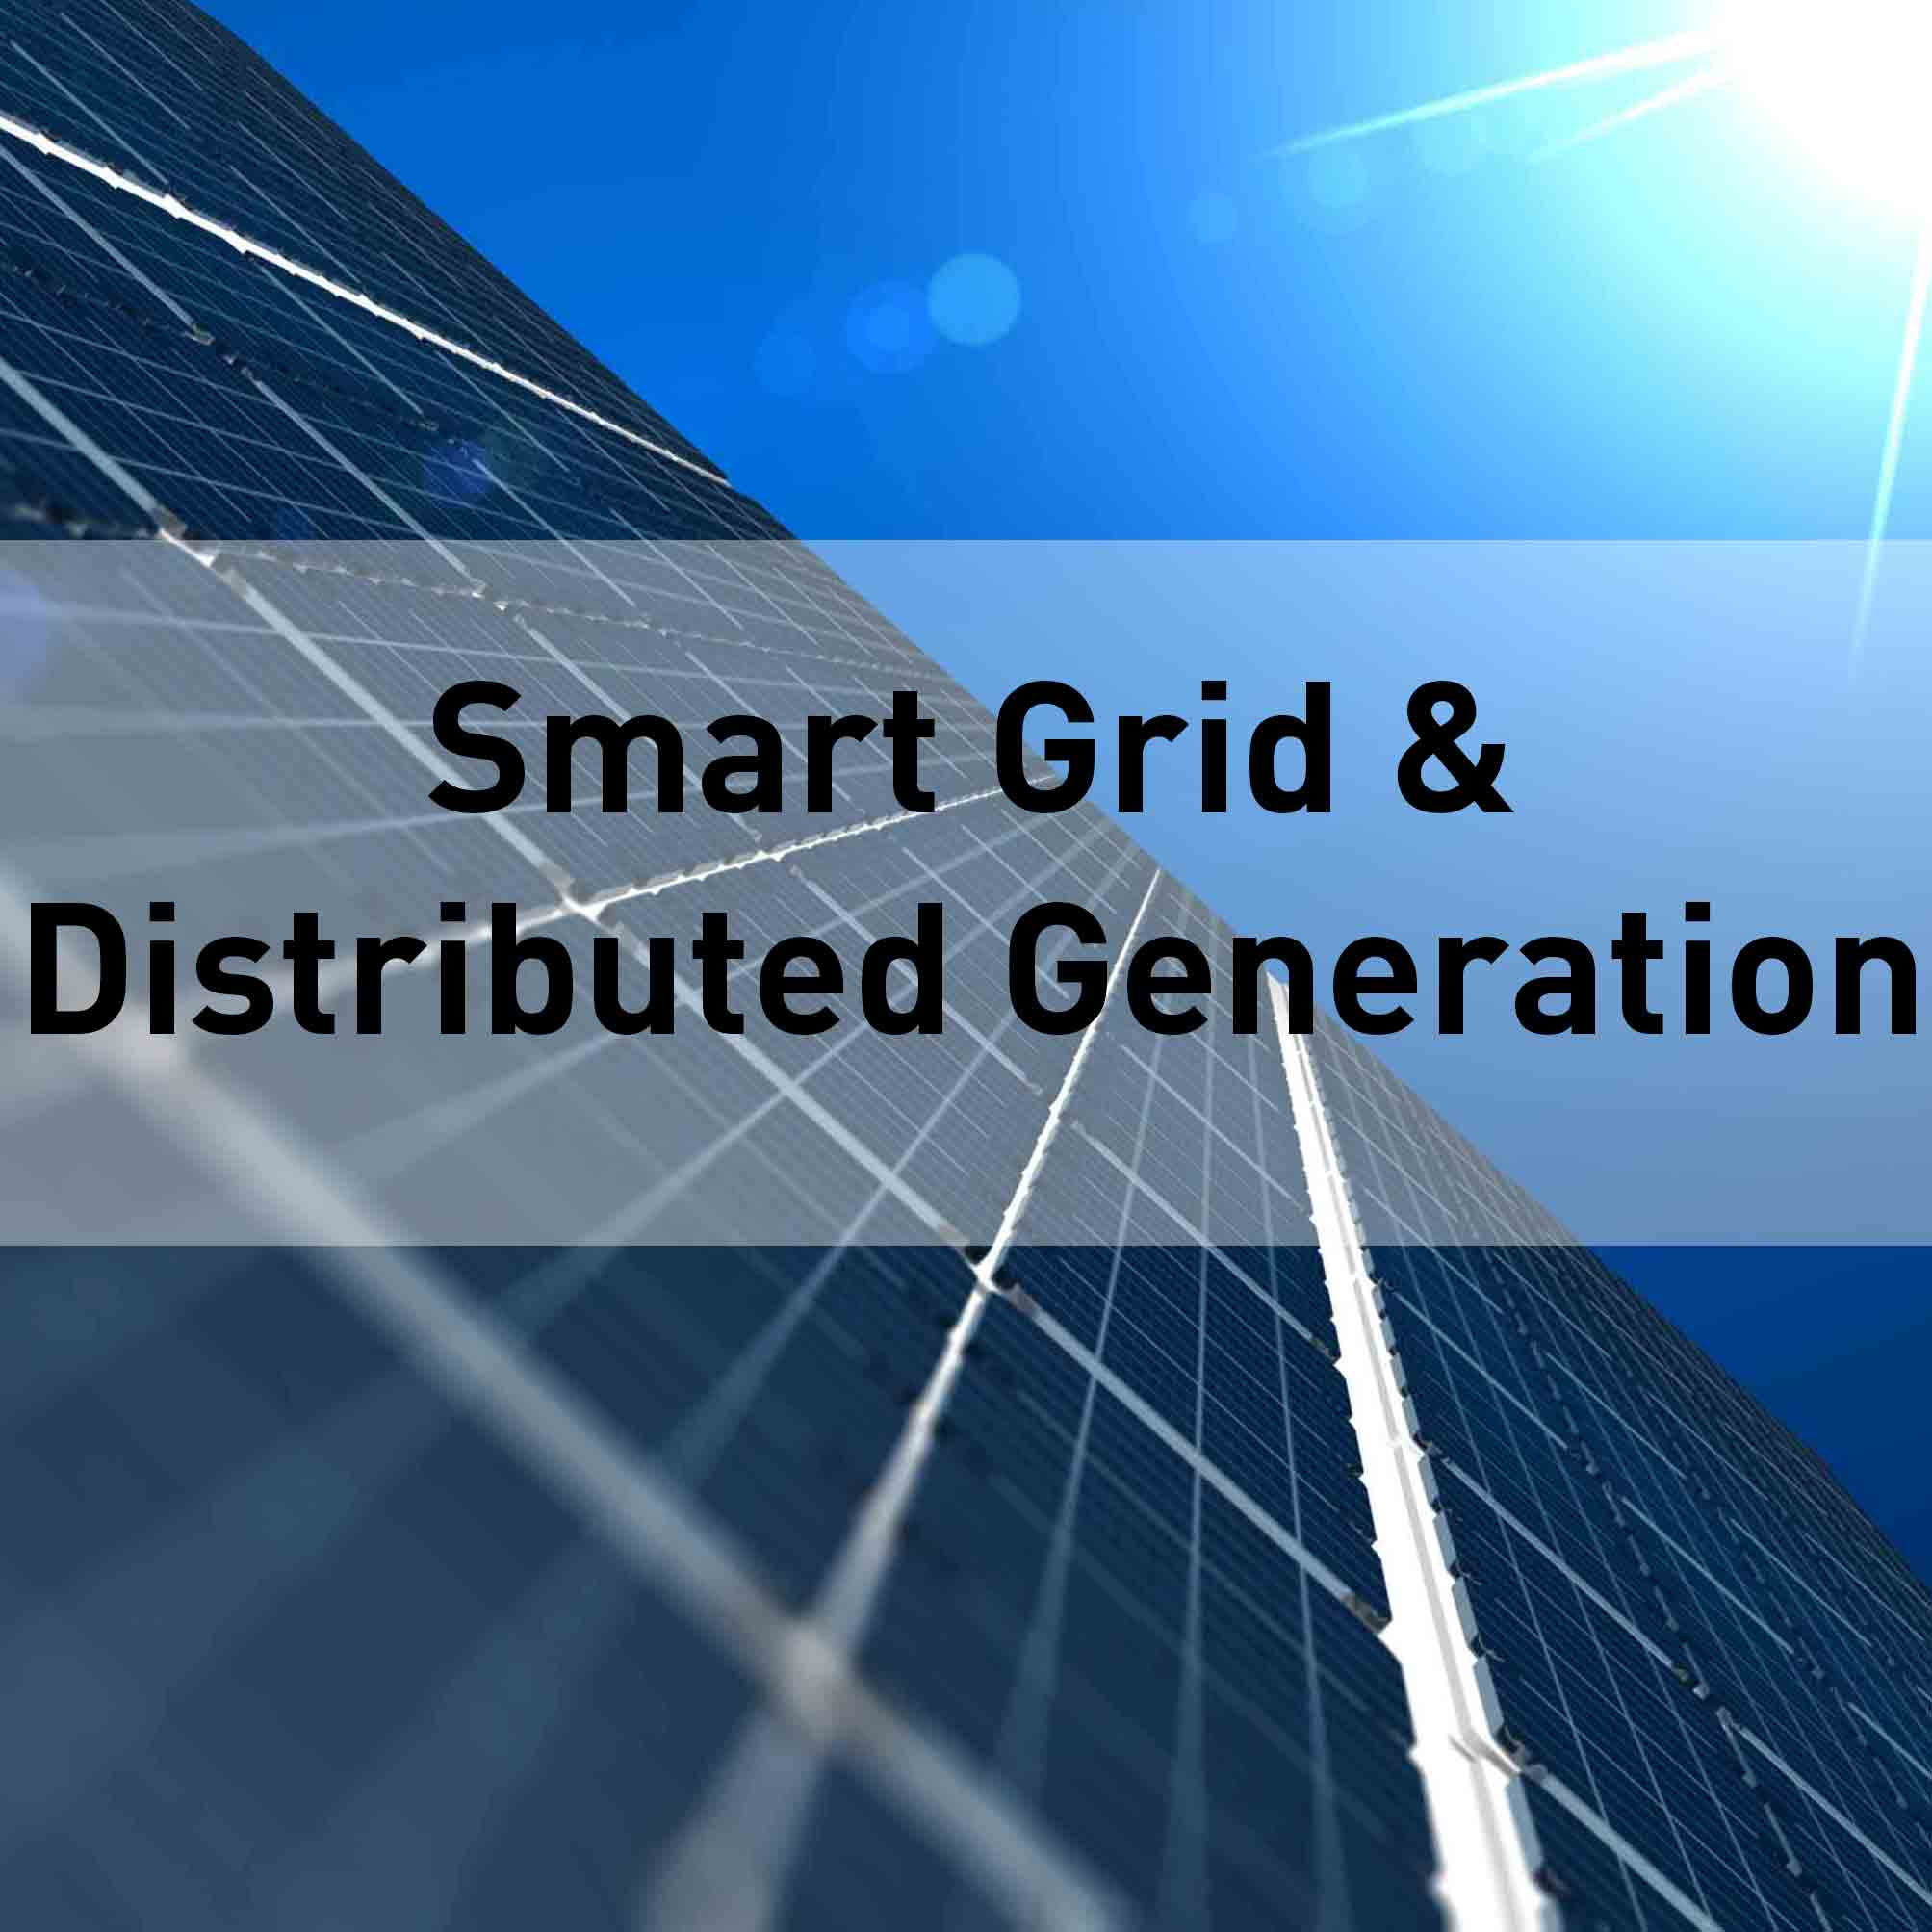 smart-grid-distributed-generation